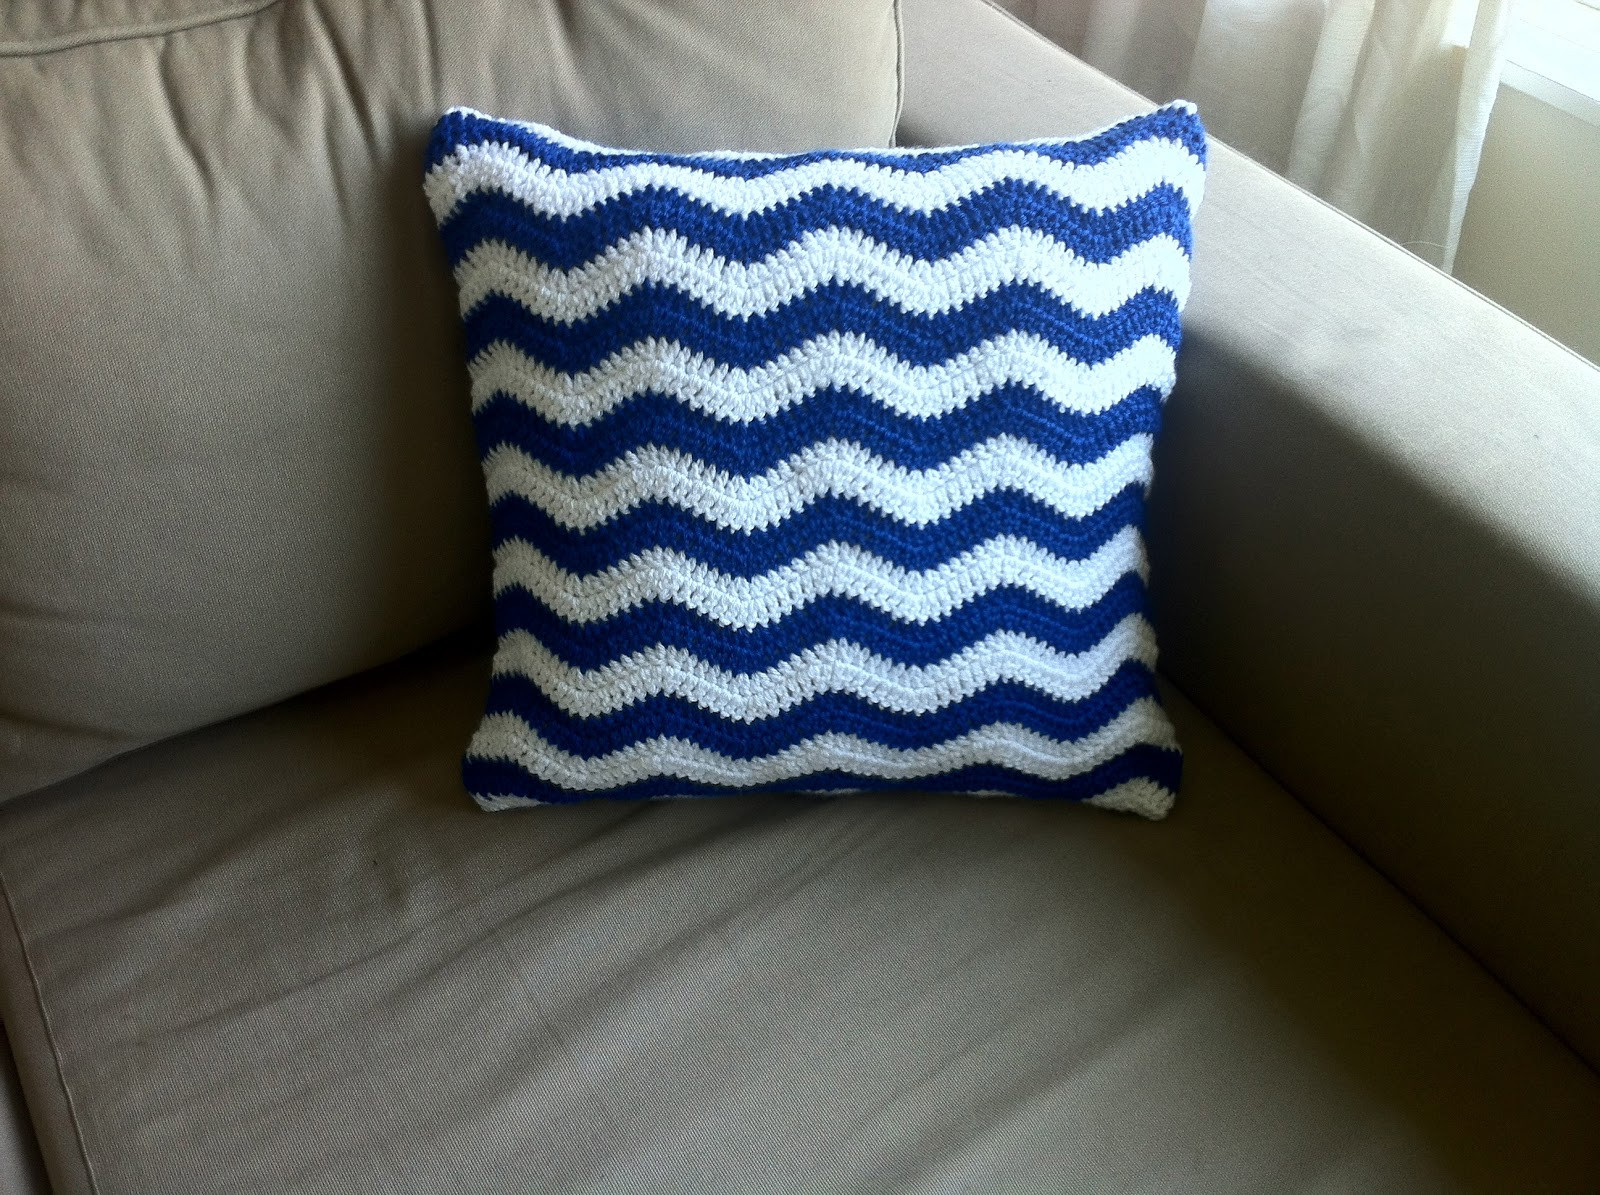 Cushion Patterns Awesome the Way I Crochet Crochet Ripple Cushion Cover Free Pattern Of Lovely 43 Images Cushion Patterns